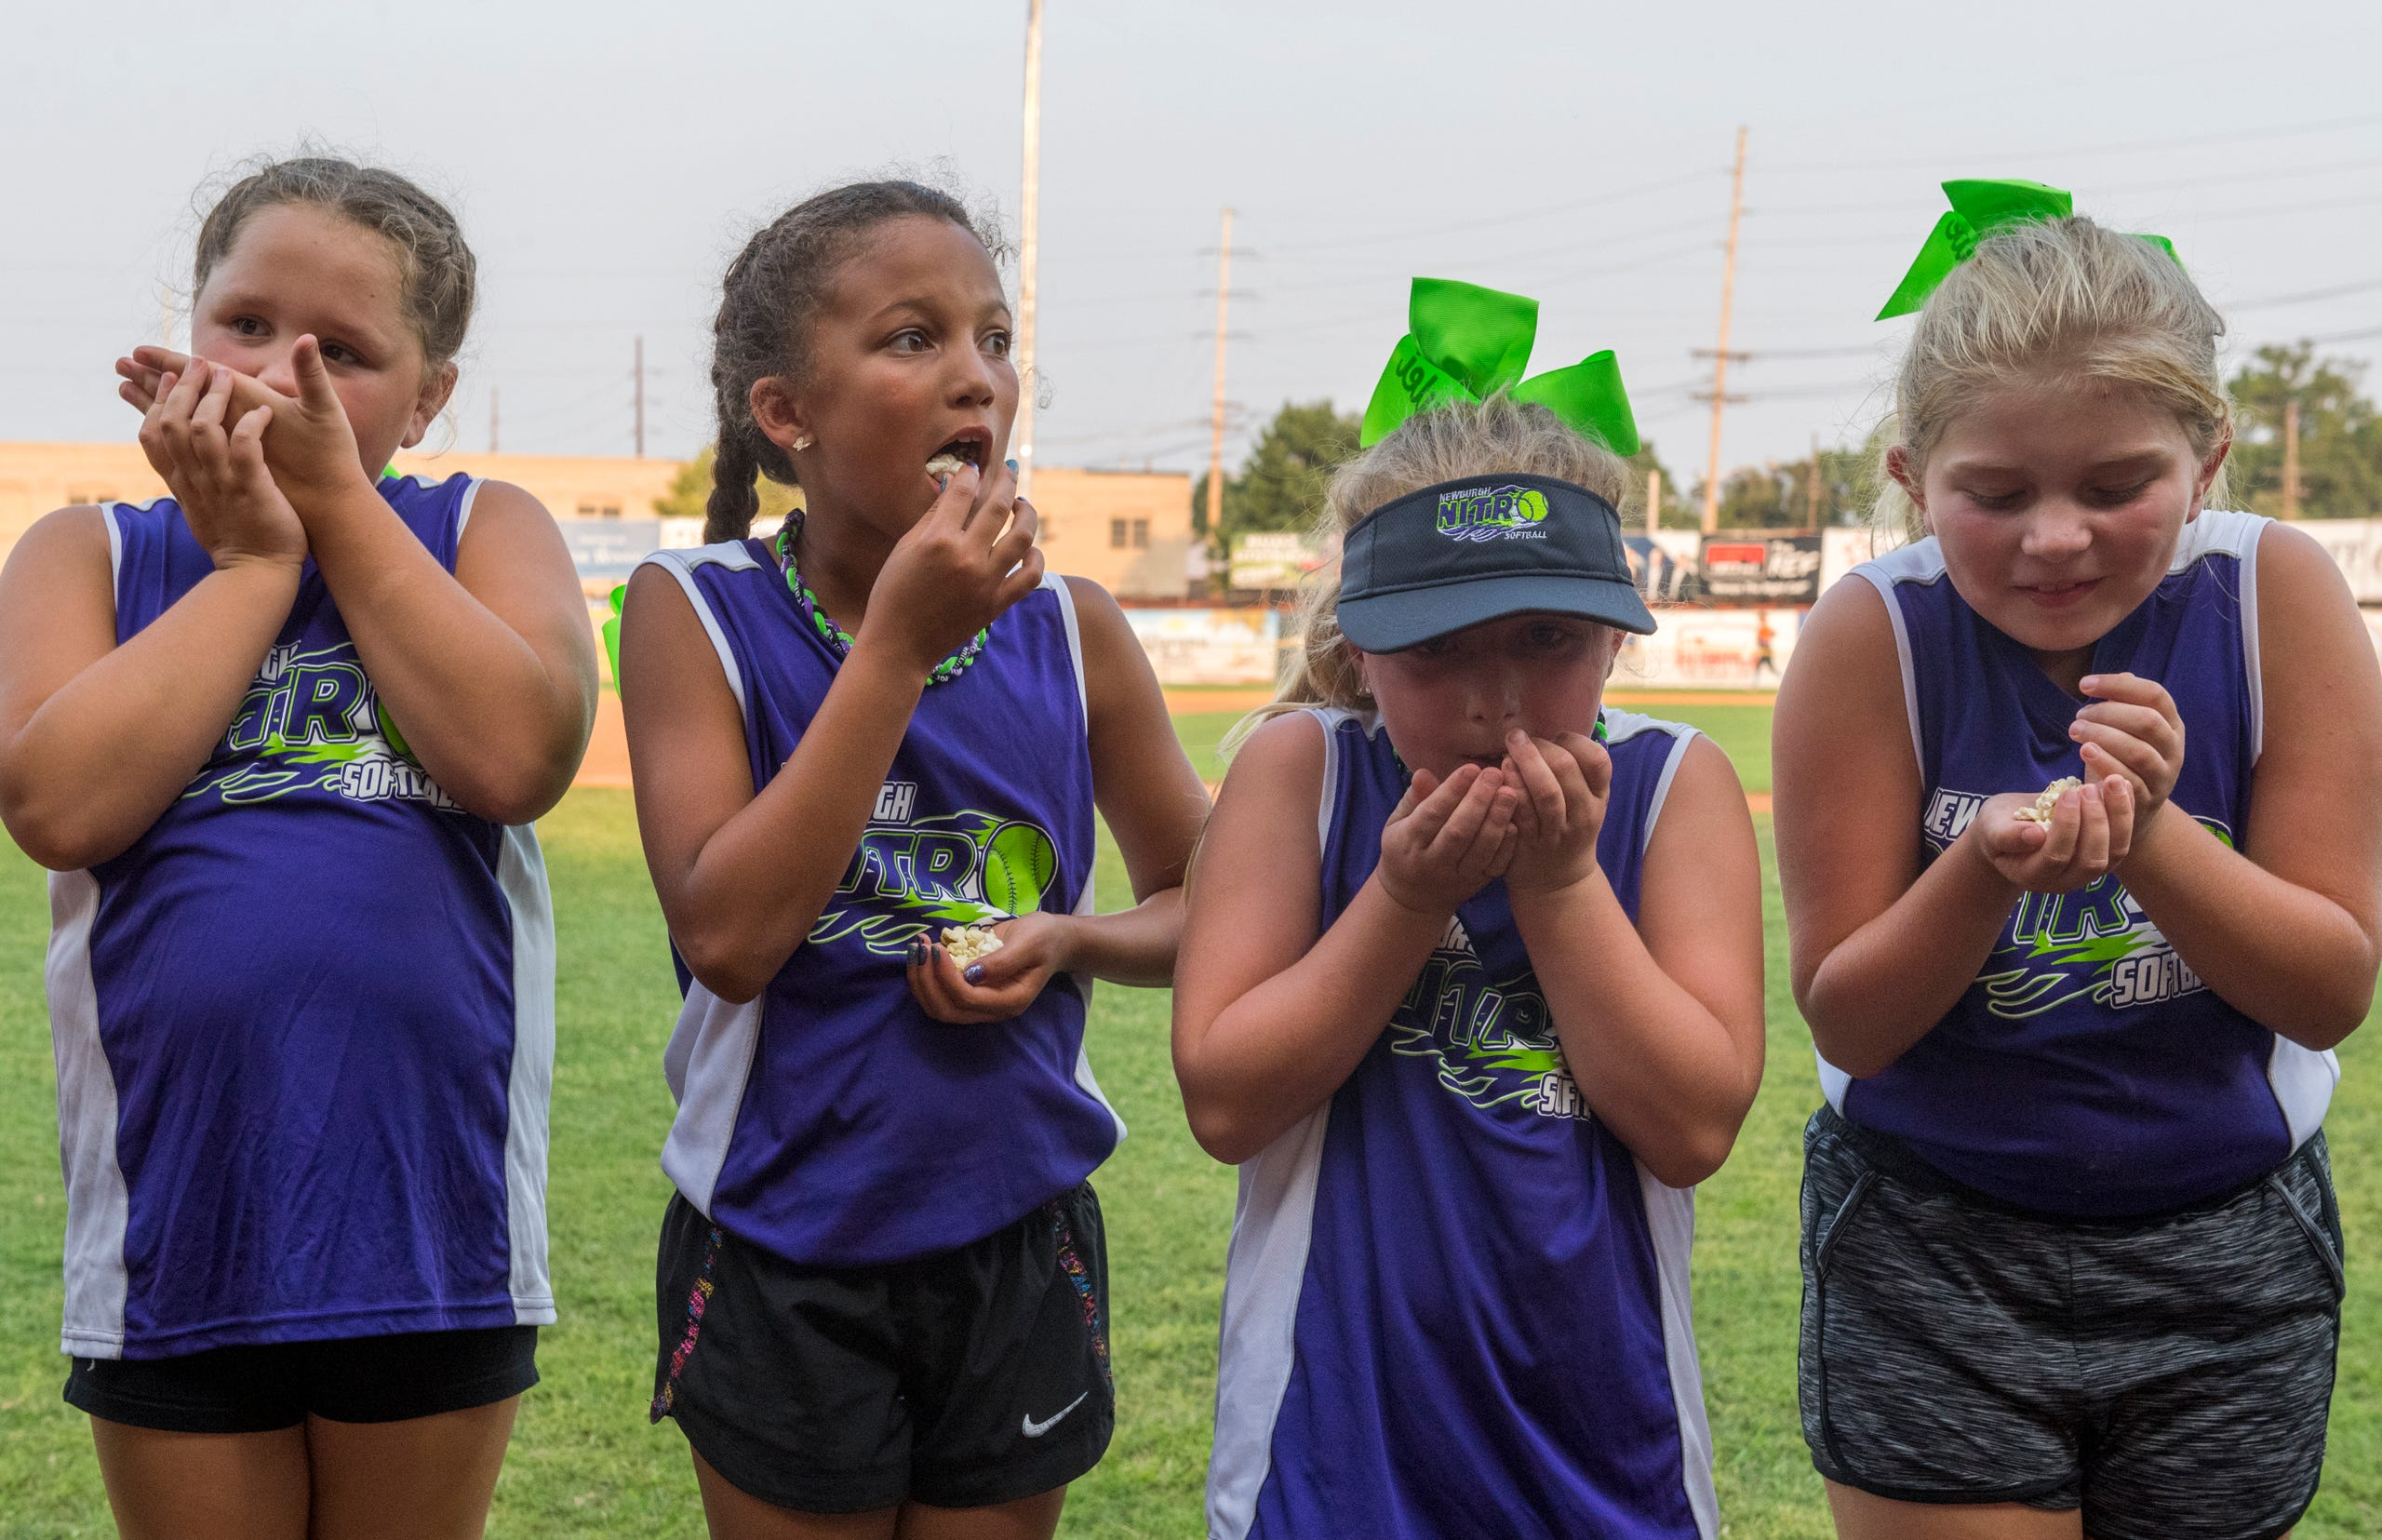 The Newburgh Nitro softball team eats popcorn on the field ahead of the exhibition game between USSSA Pride and Team Florida at Bosse Field in Evansville, Ind., Wednesday evening, July 14, 2021.